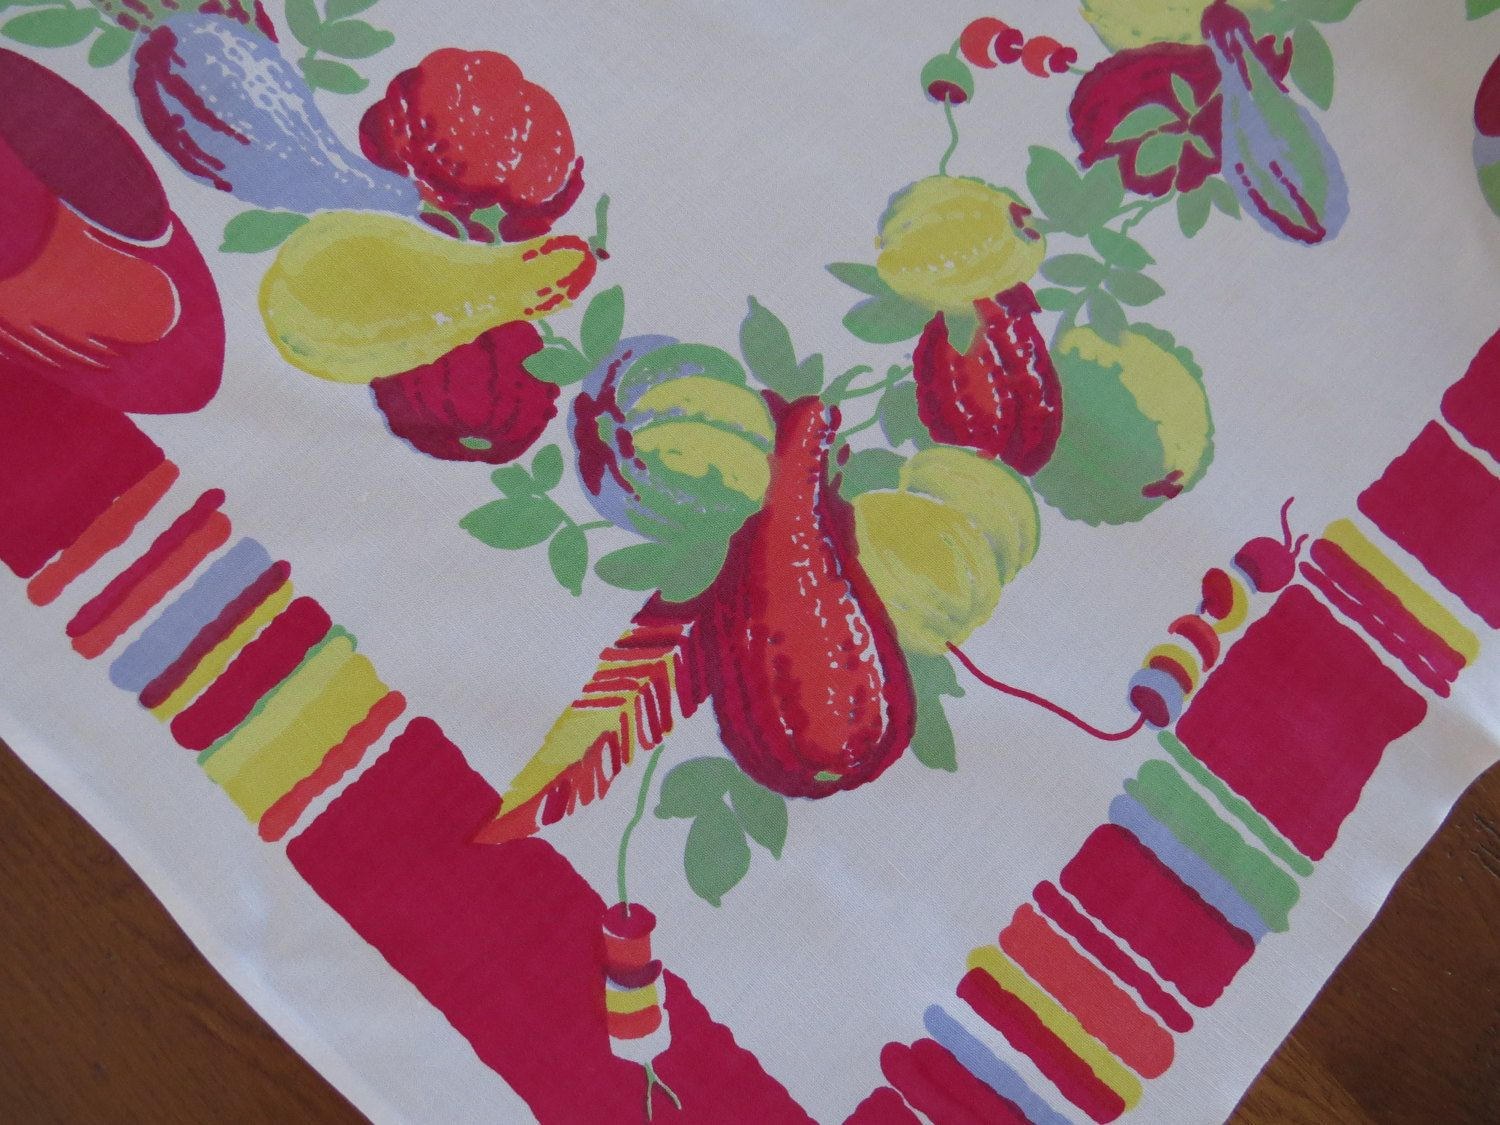 Arts and crafts table linens - Wilendur Tablecloth Southwestern Spanish Mexican Theme Pottery Gourds Red Green Yellow Graphics